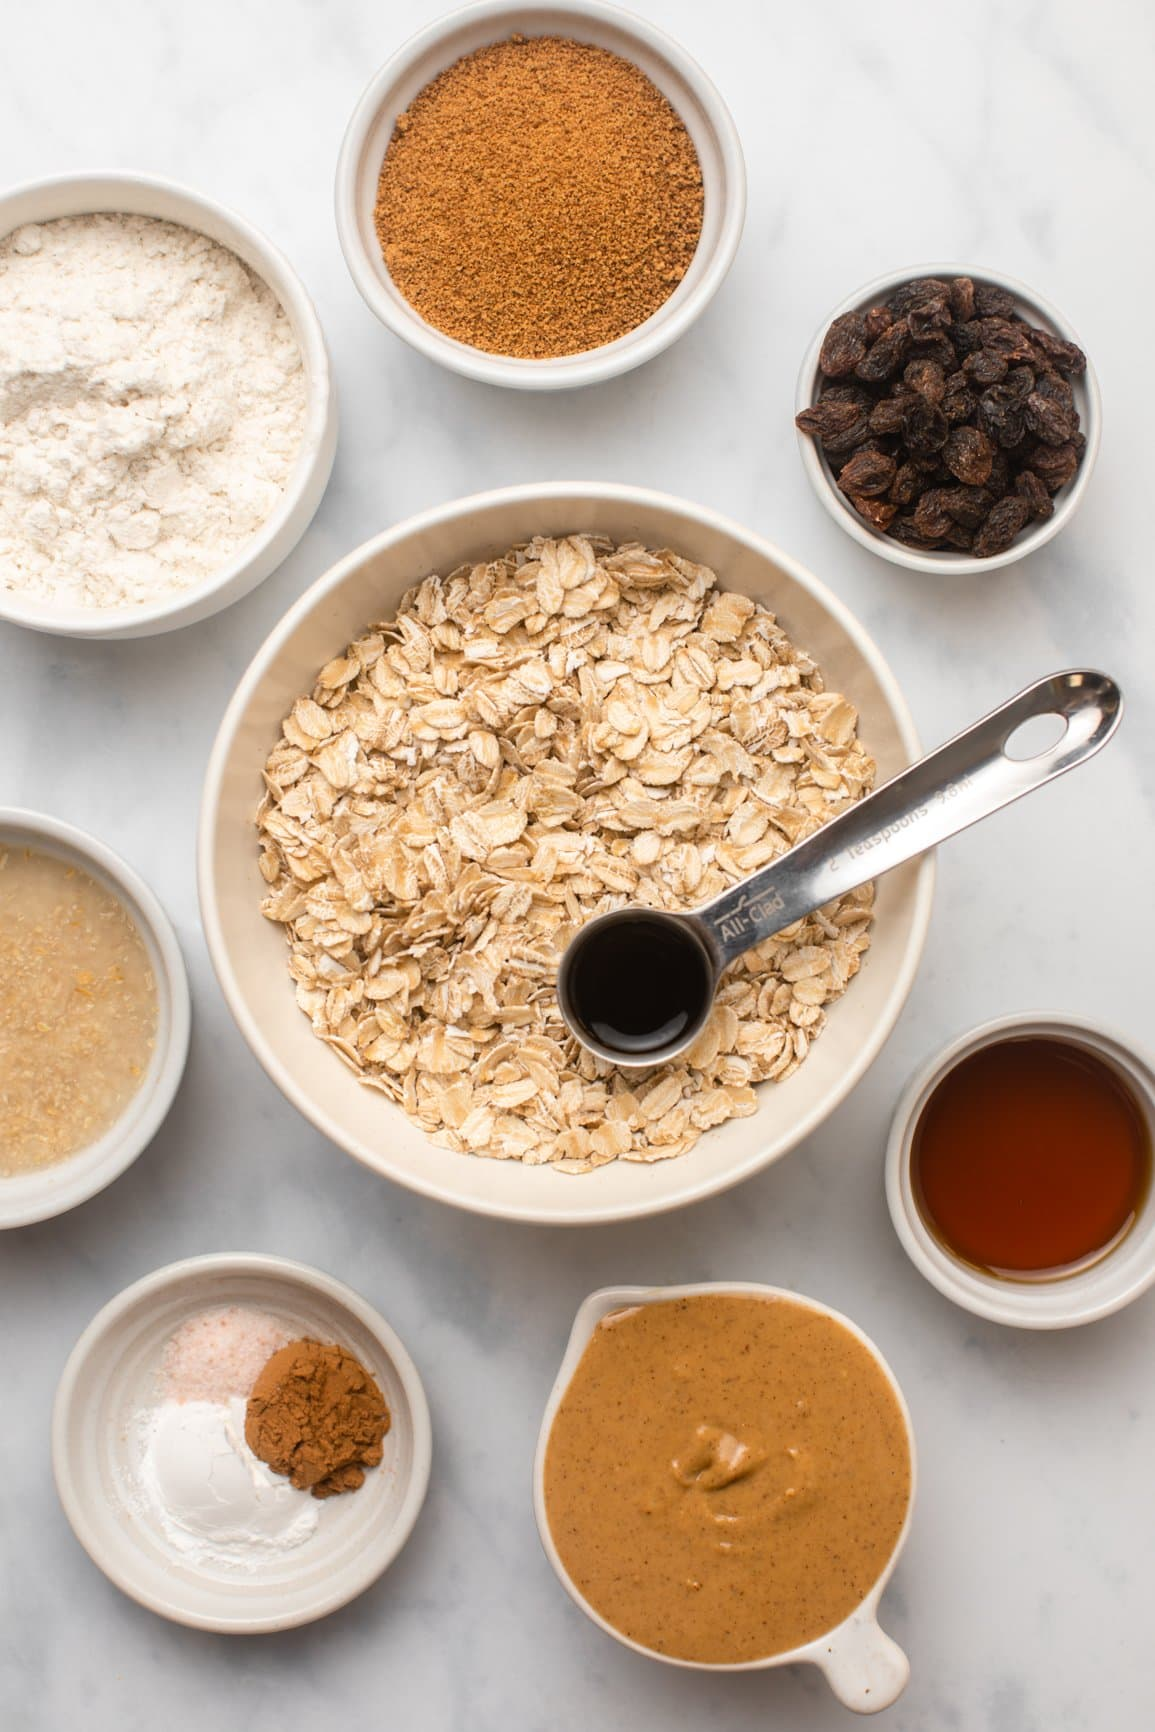 ingredients for cinnamon raisin oatmeal cookies in small white bowls on marble backgrounds